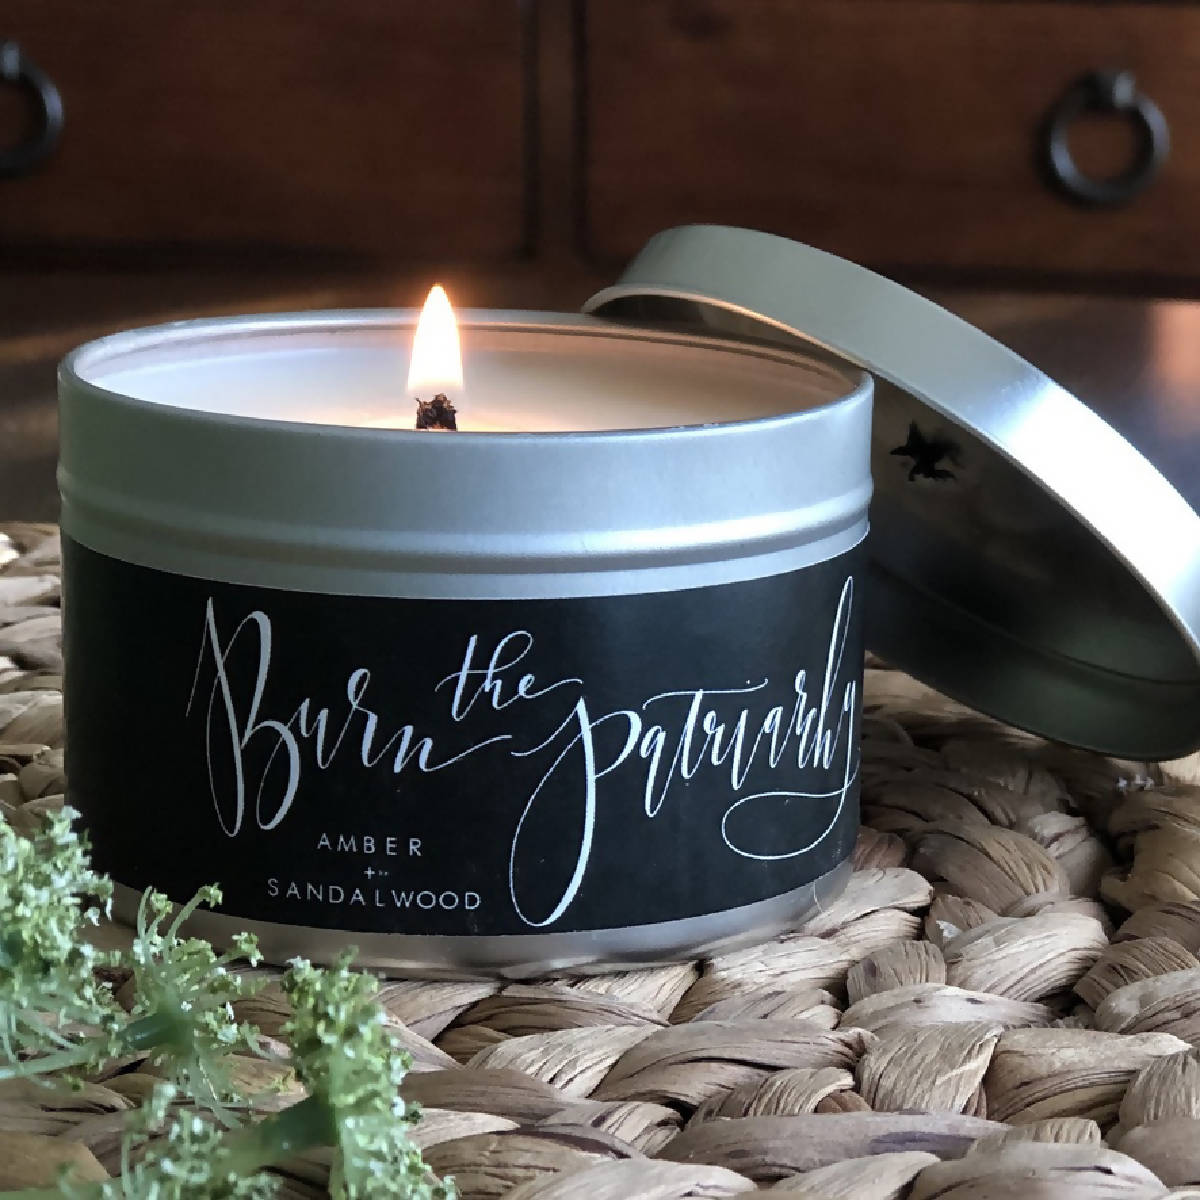 Burn the Patriarchy Amber + Sandalwood Natural Soy Candle